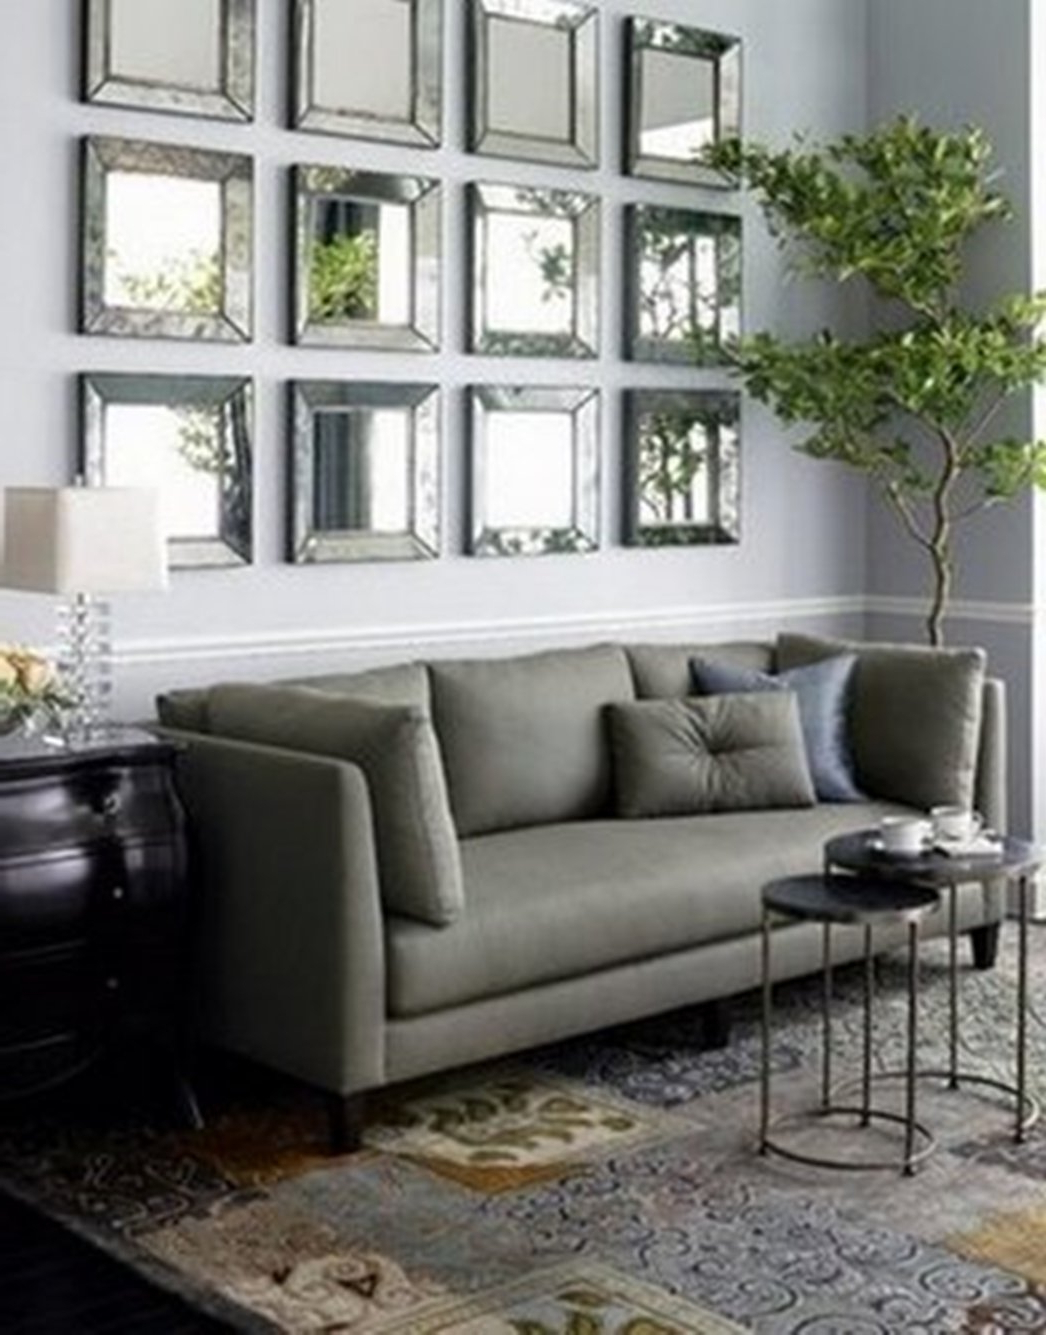 Decorative Living Room Wall Mirrors With Regard To 2019 Living Room : Living Room Mirror Wall With Square Silver Wall (View 8 of 20)